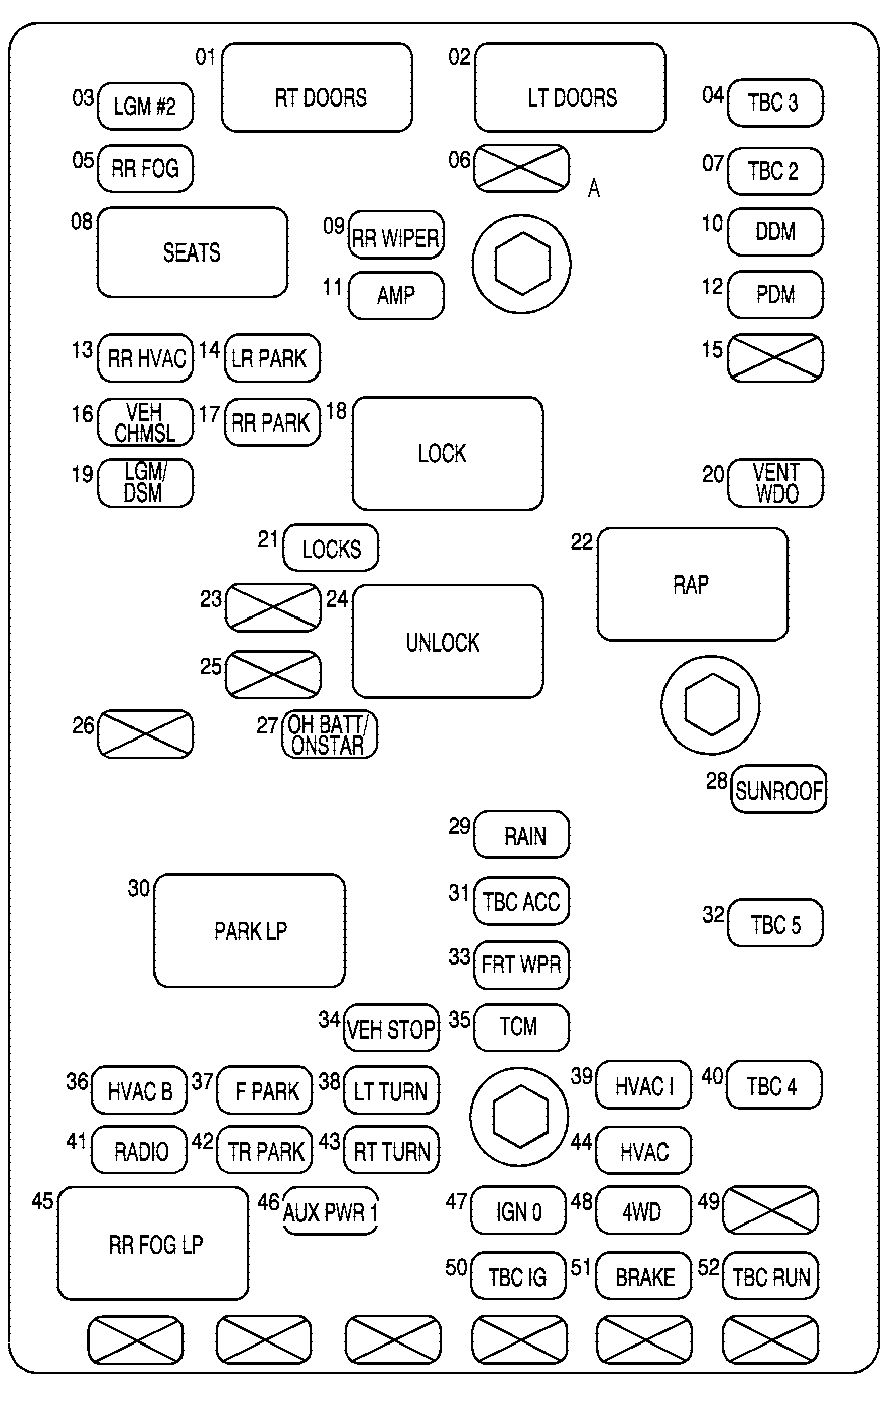 2005 Yukon Fuse Box Archive Of Automotive Wiring Diagram Gmc Xl 2006 Envoy Schematics Rh Thyl Co Uk Denali